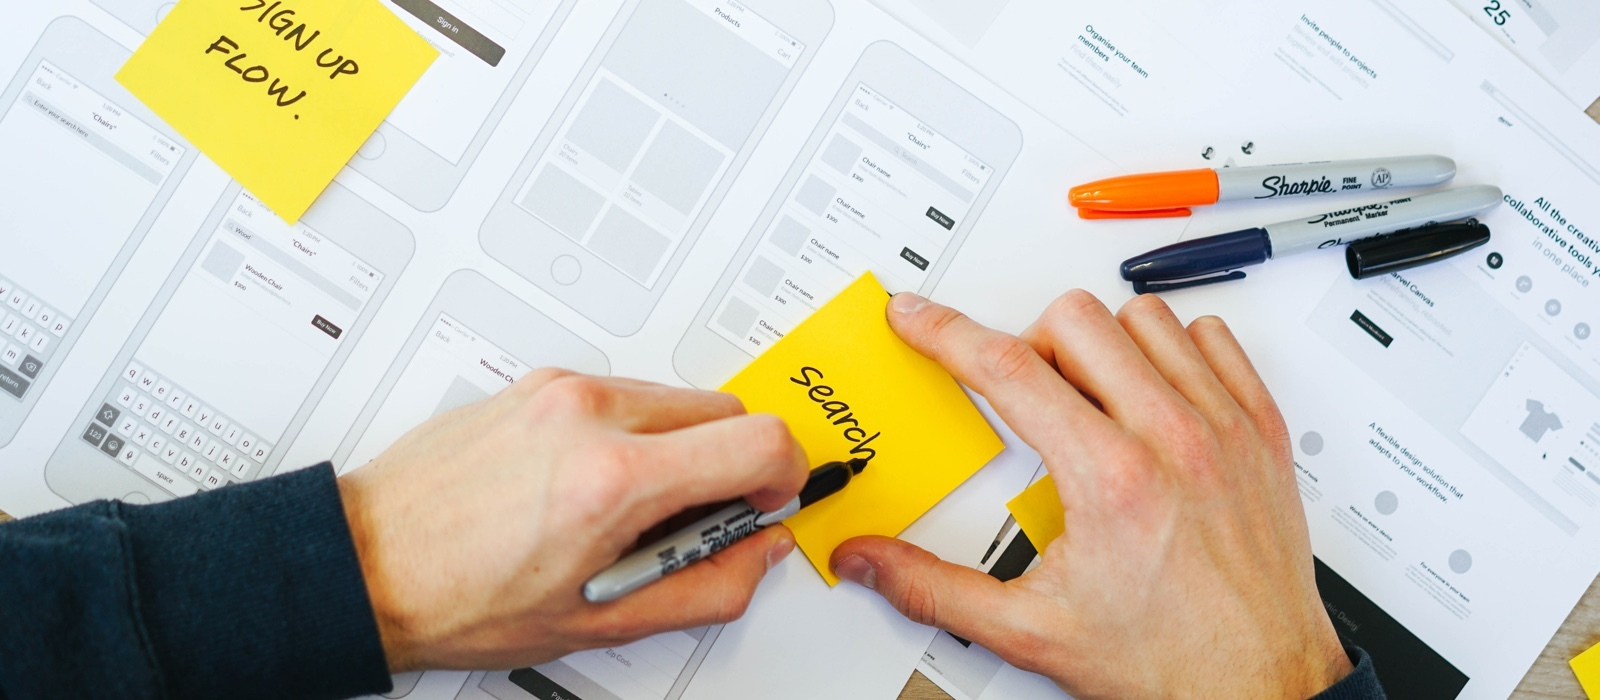 Co-creating Prototypes with Clients & Stakeholders